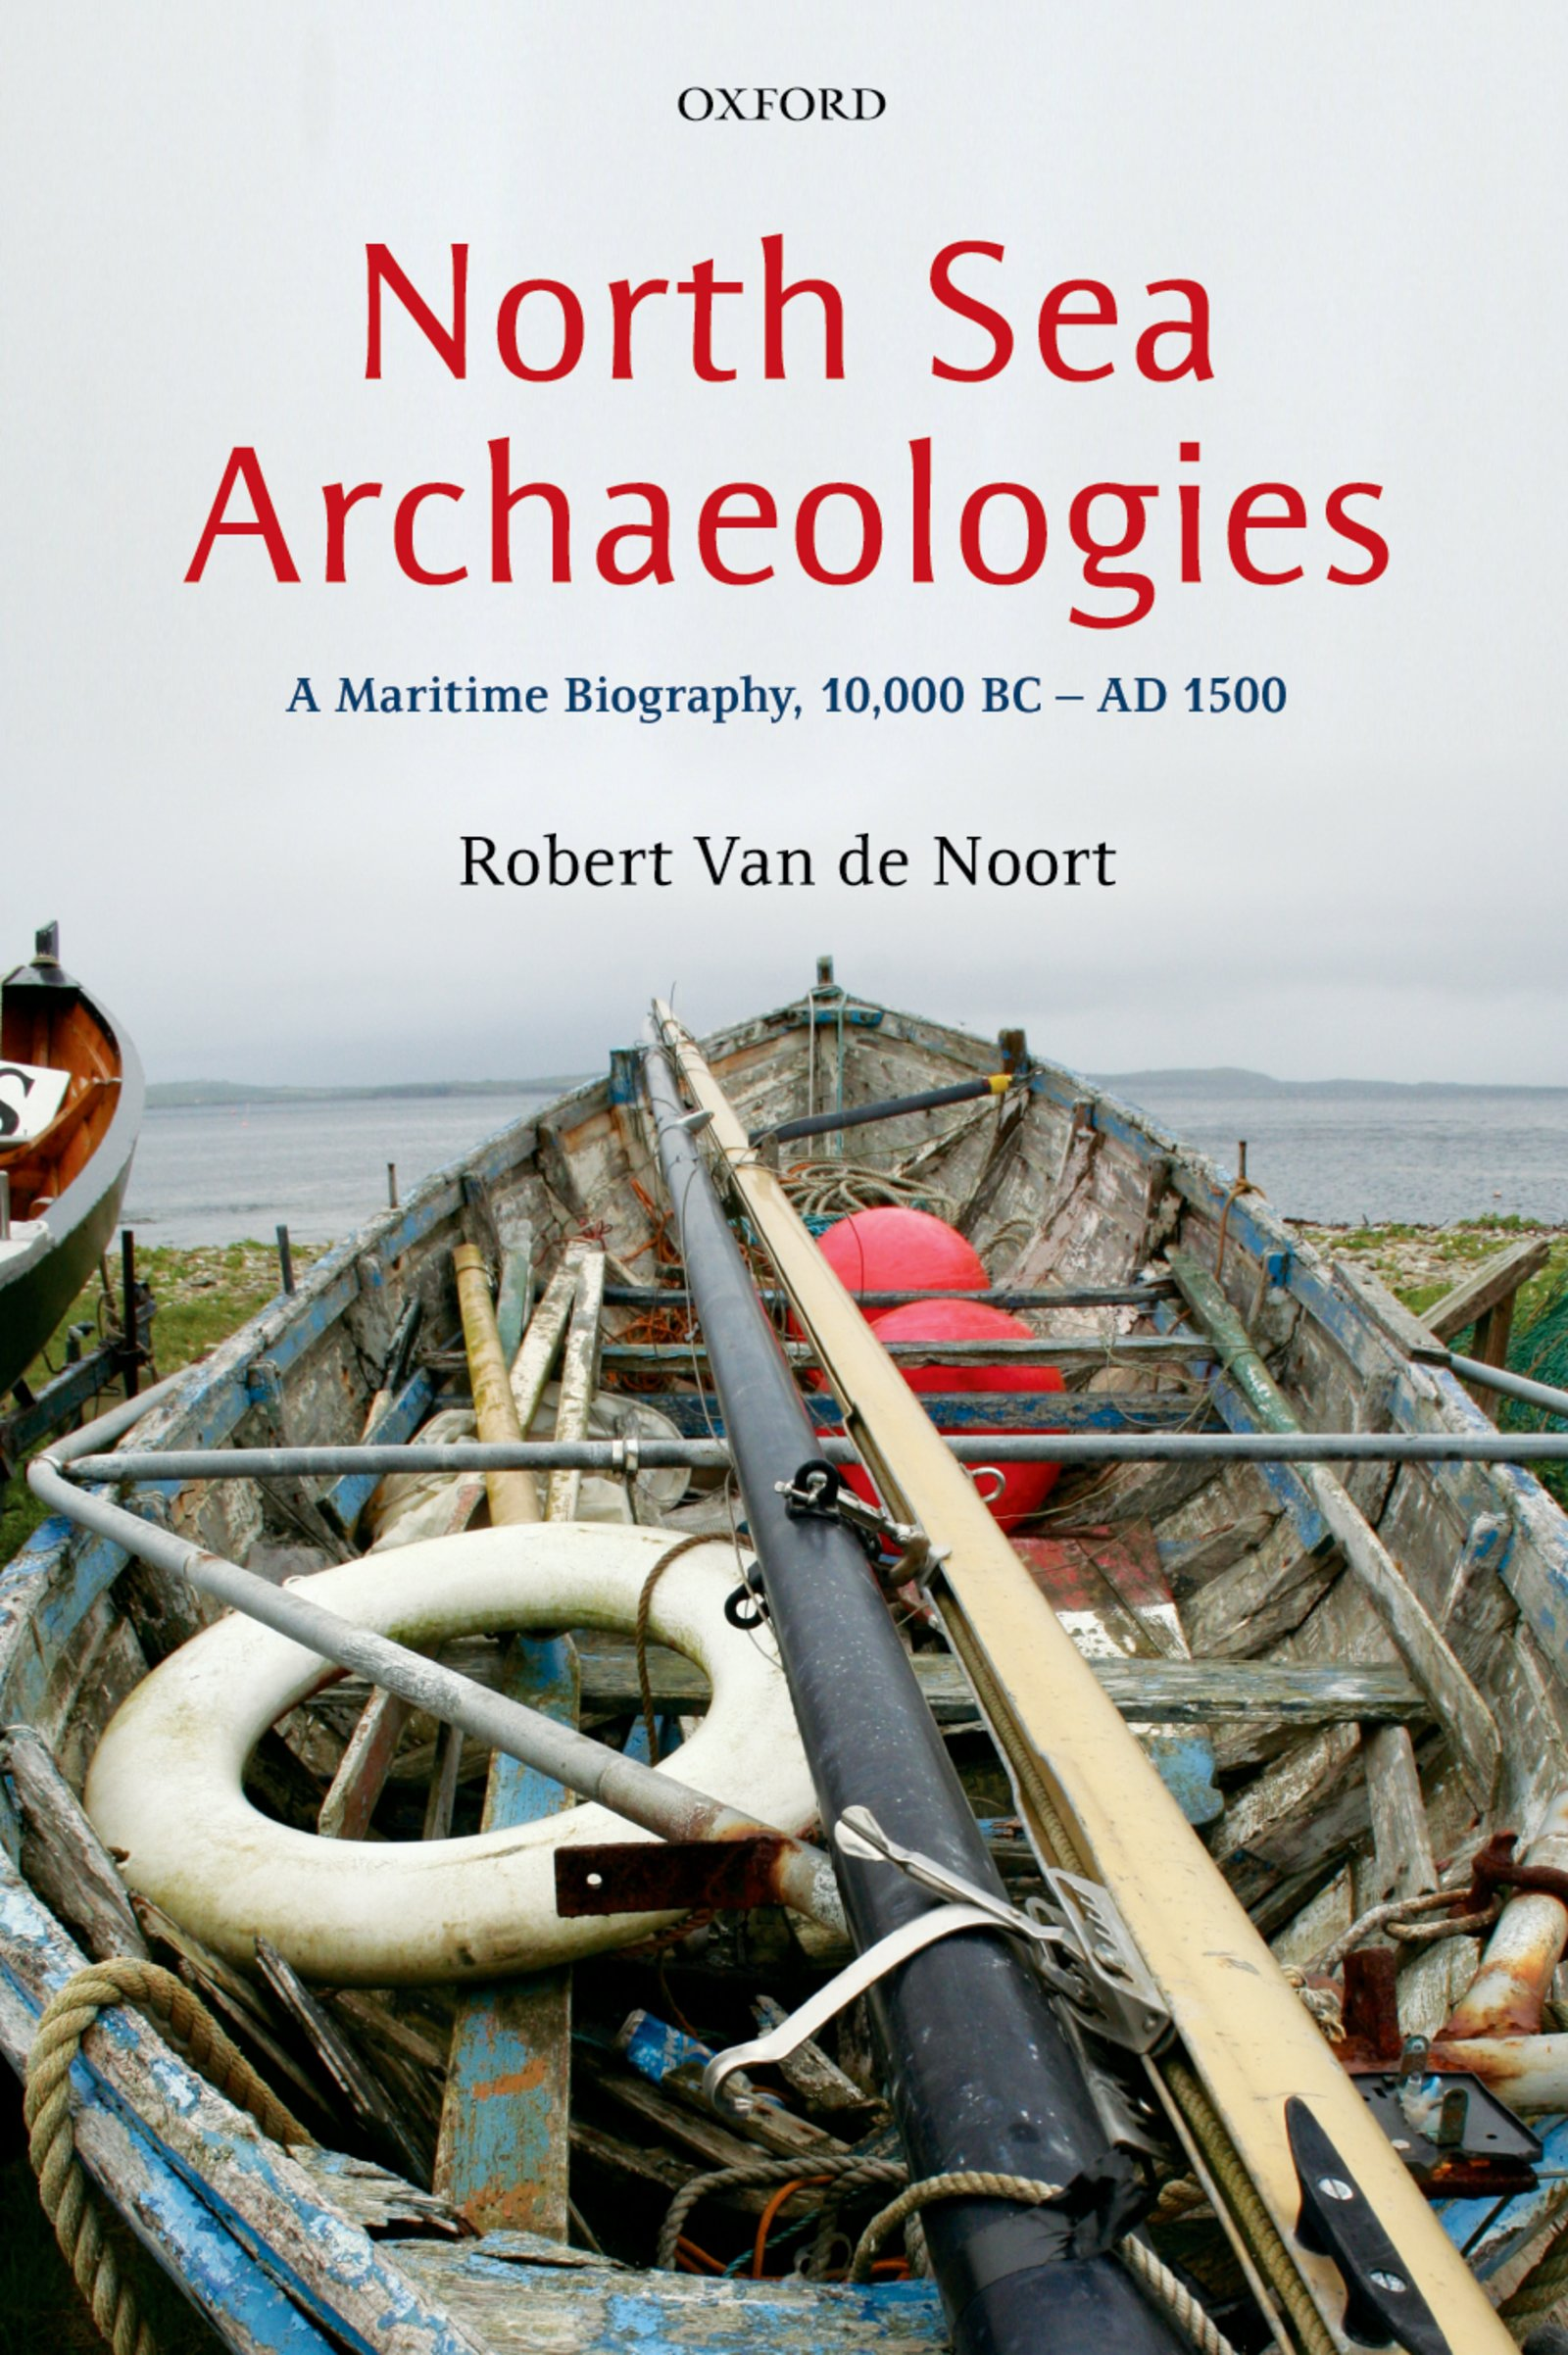 North Sea ArchaeologiesA Maritime Biography, 10,000 BC - AD 1500